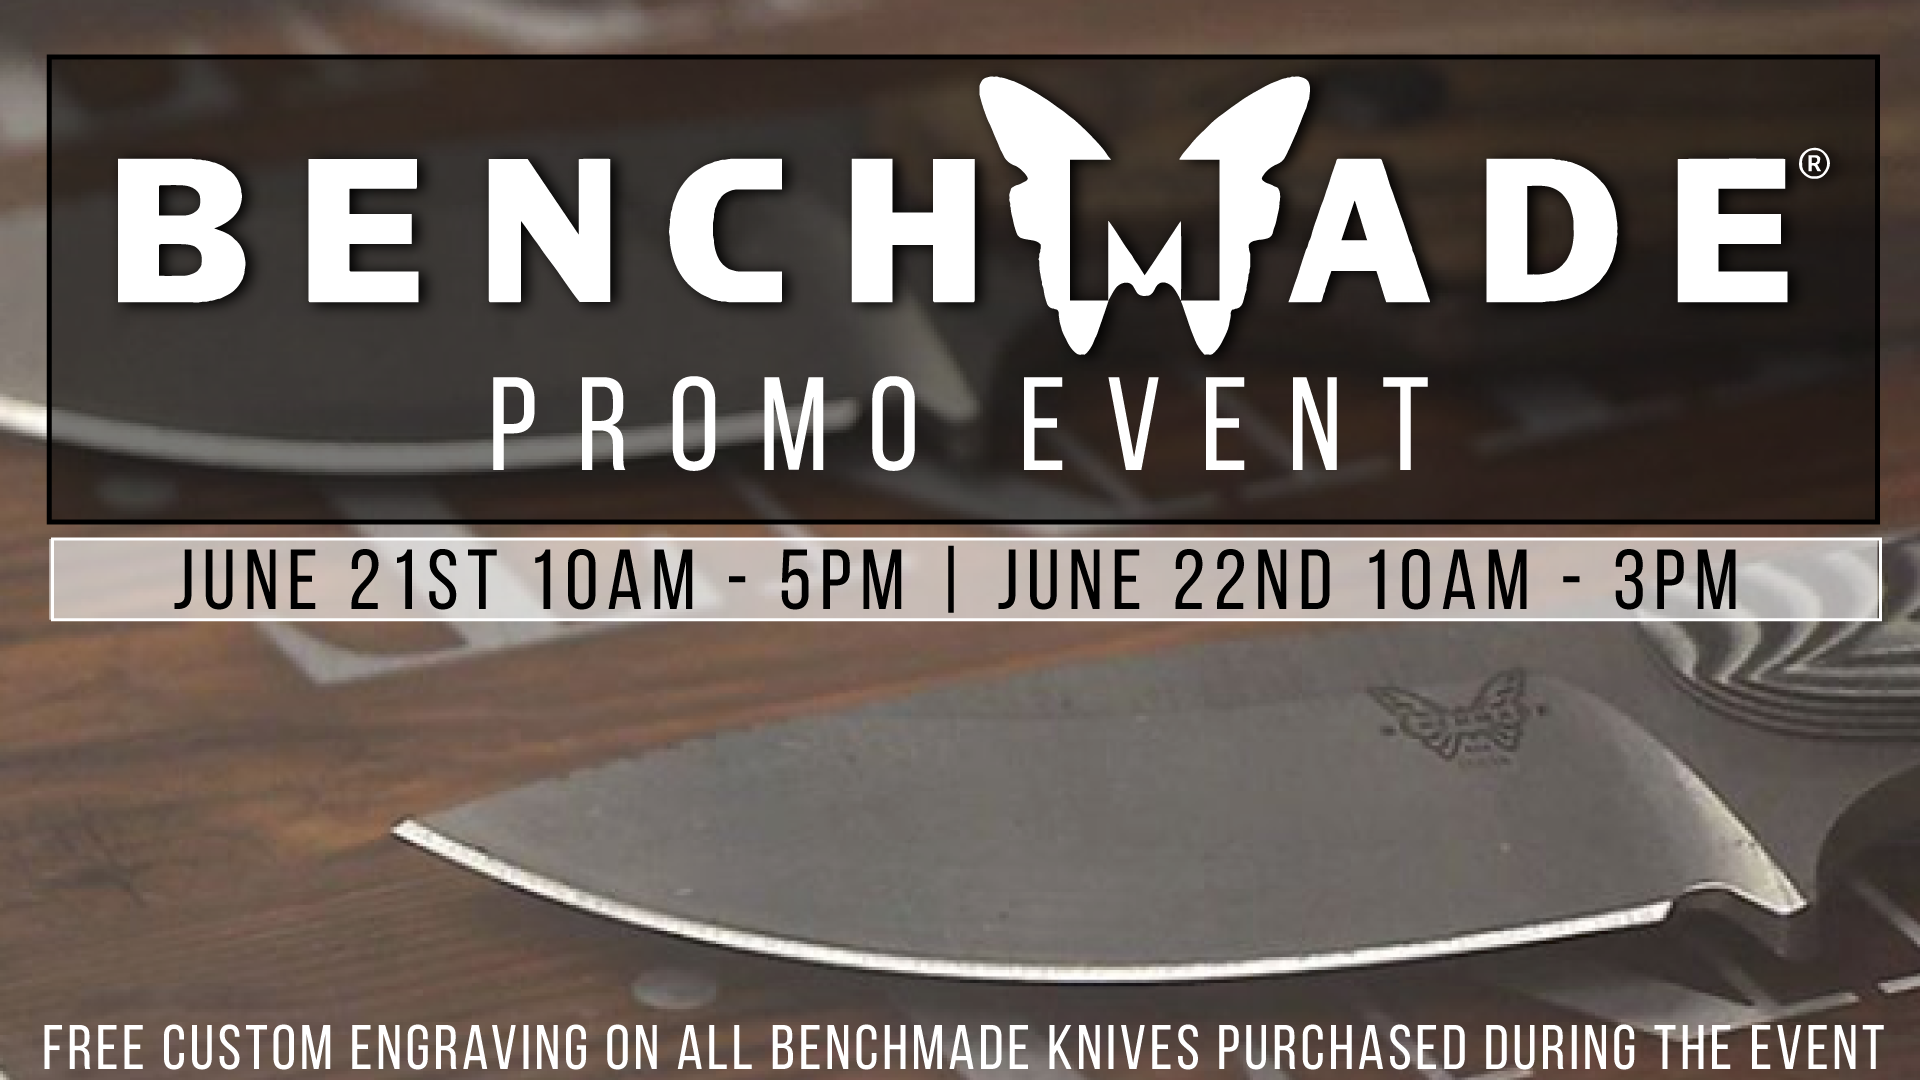 Benchmade Promo Event at Buds Gun Shop & Range TN